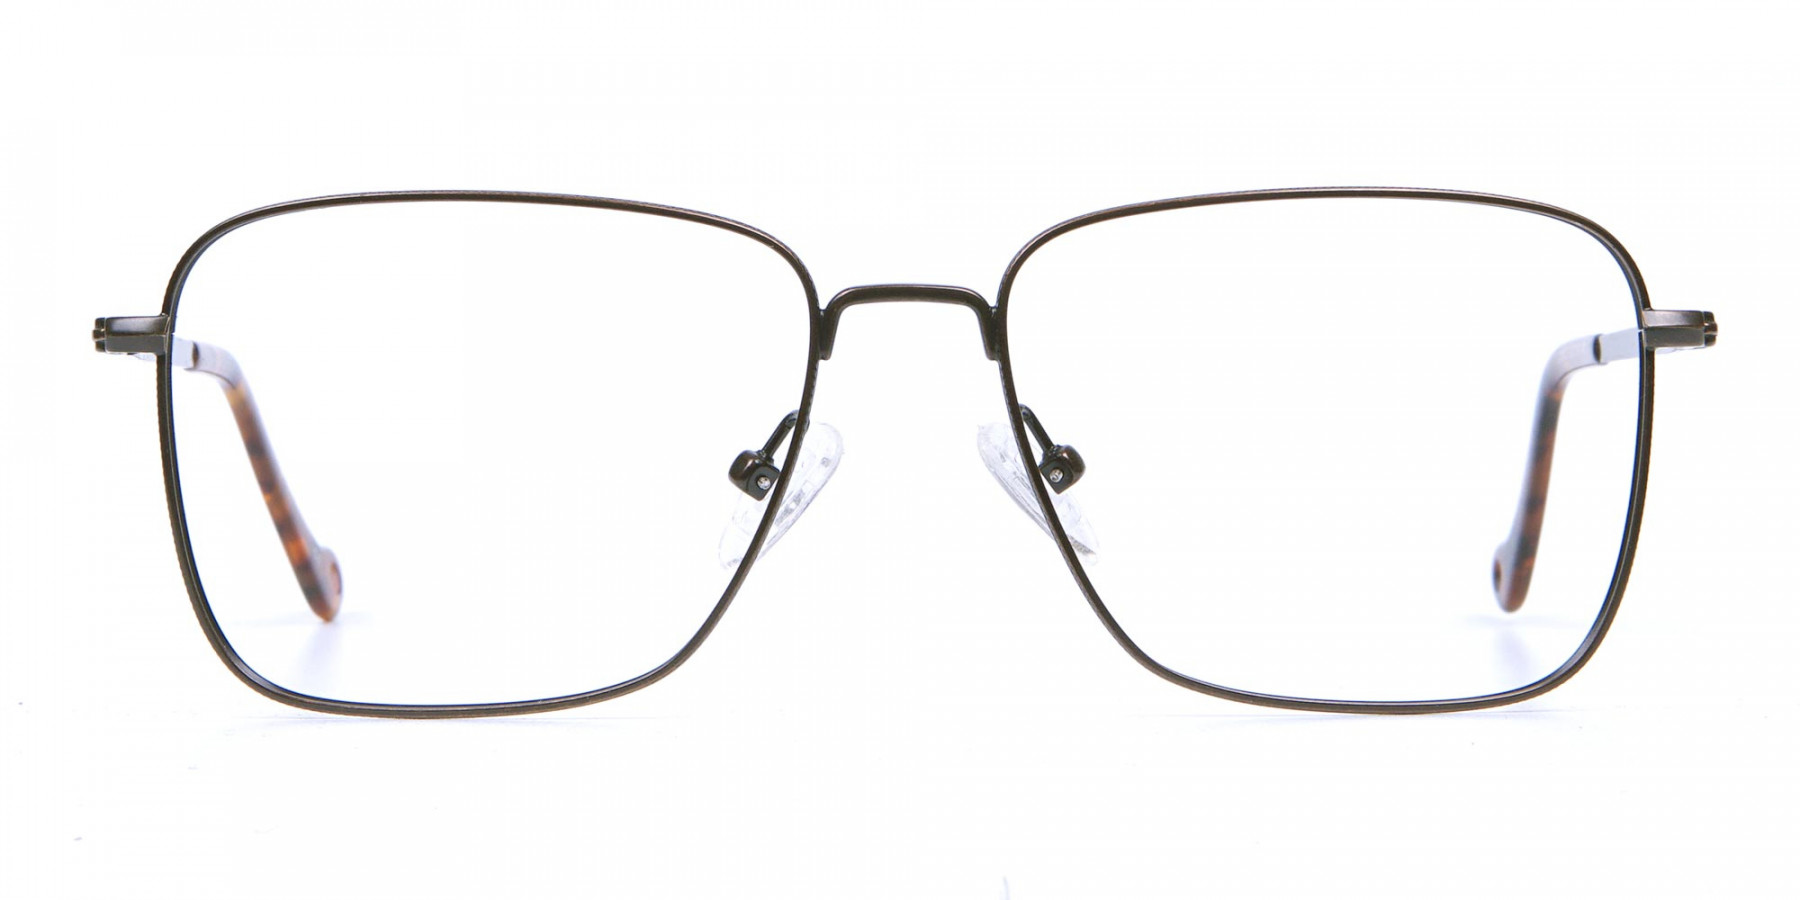 Brown Tortoiseshell Rectangular Glasses